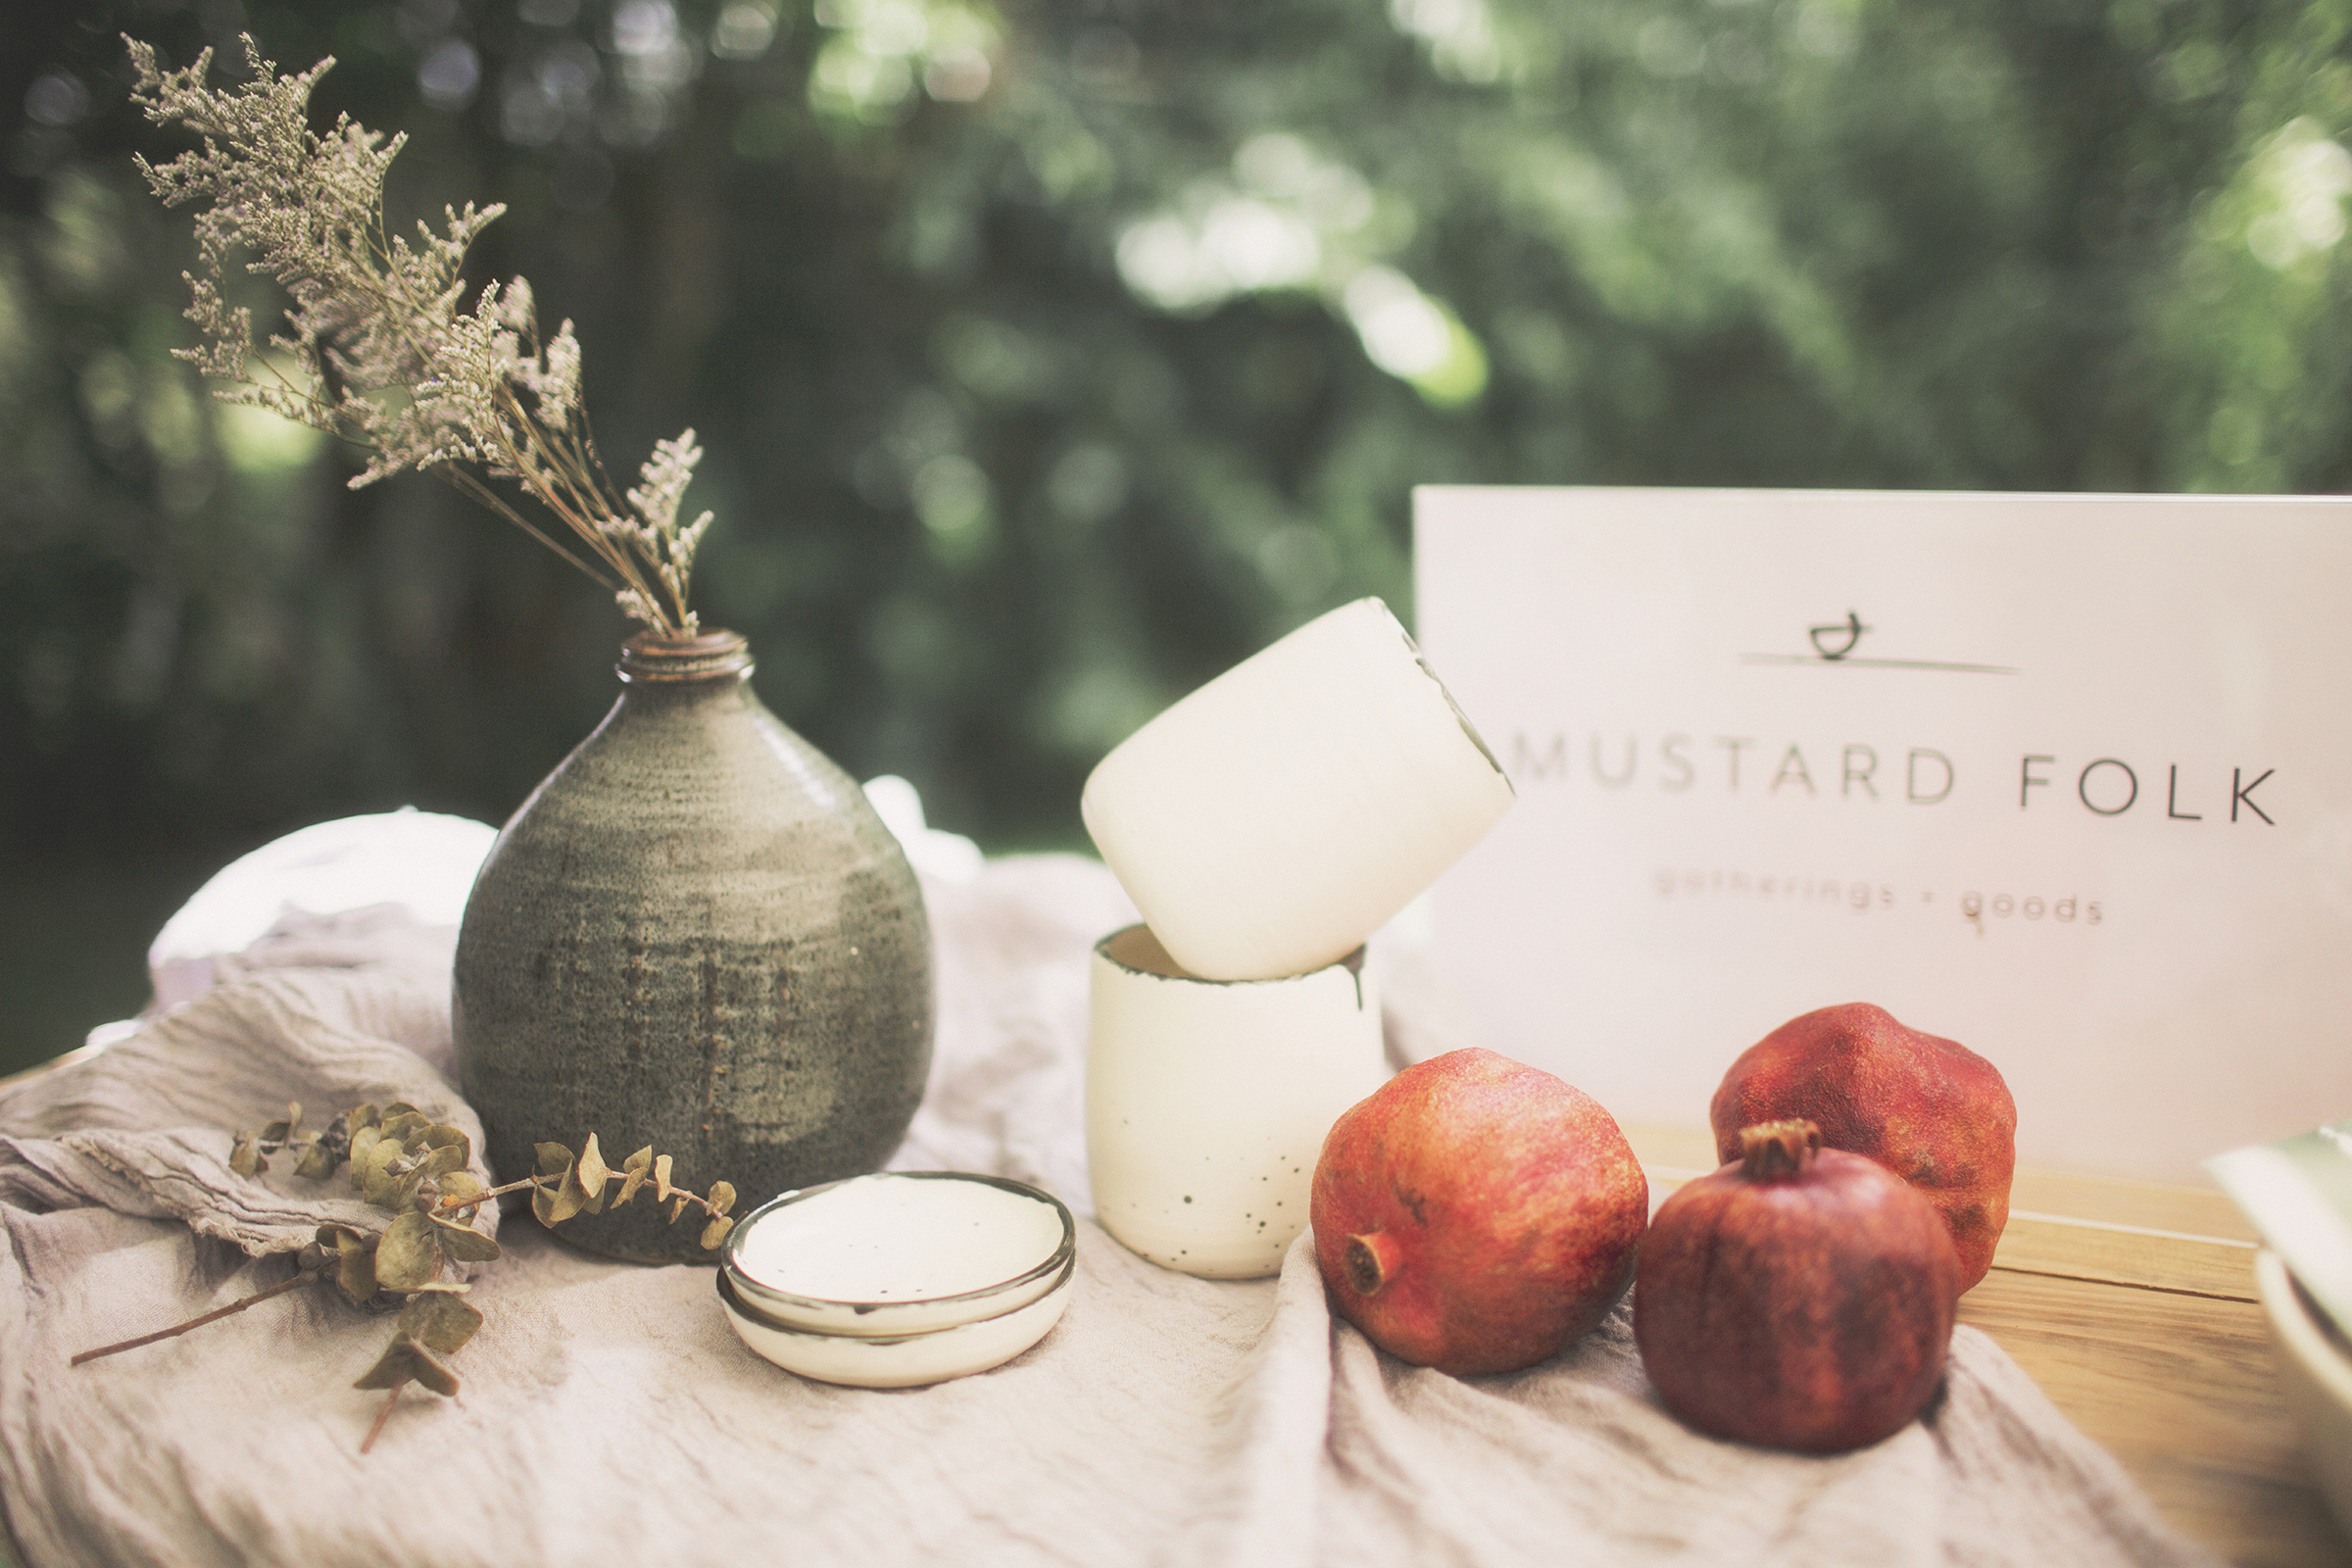 AUTUMN colour inspiration for weddings. Photo by Jenny Siaosi, table setting by Mustard folk.